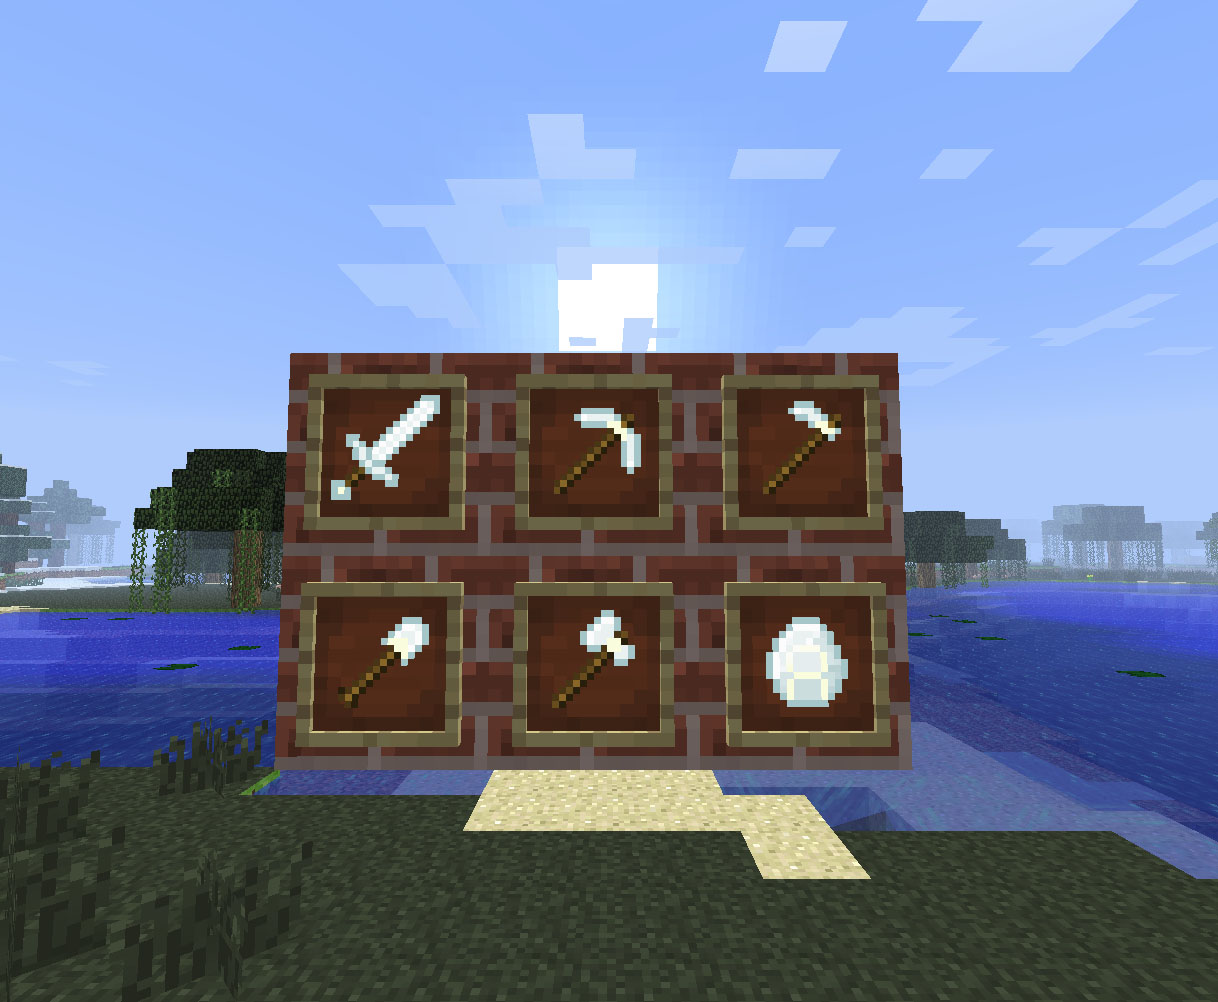 http://minecraft-forum.net/wp-content/uploads/2013/06/a7f02__Nether-Star-Tools-Mod-1.jpg